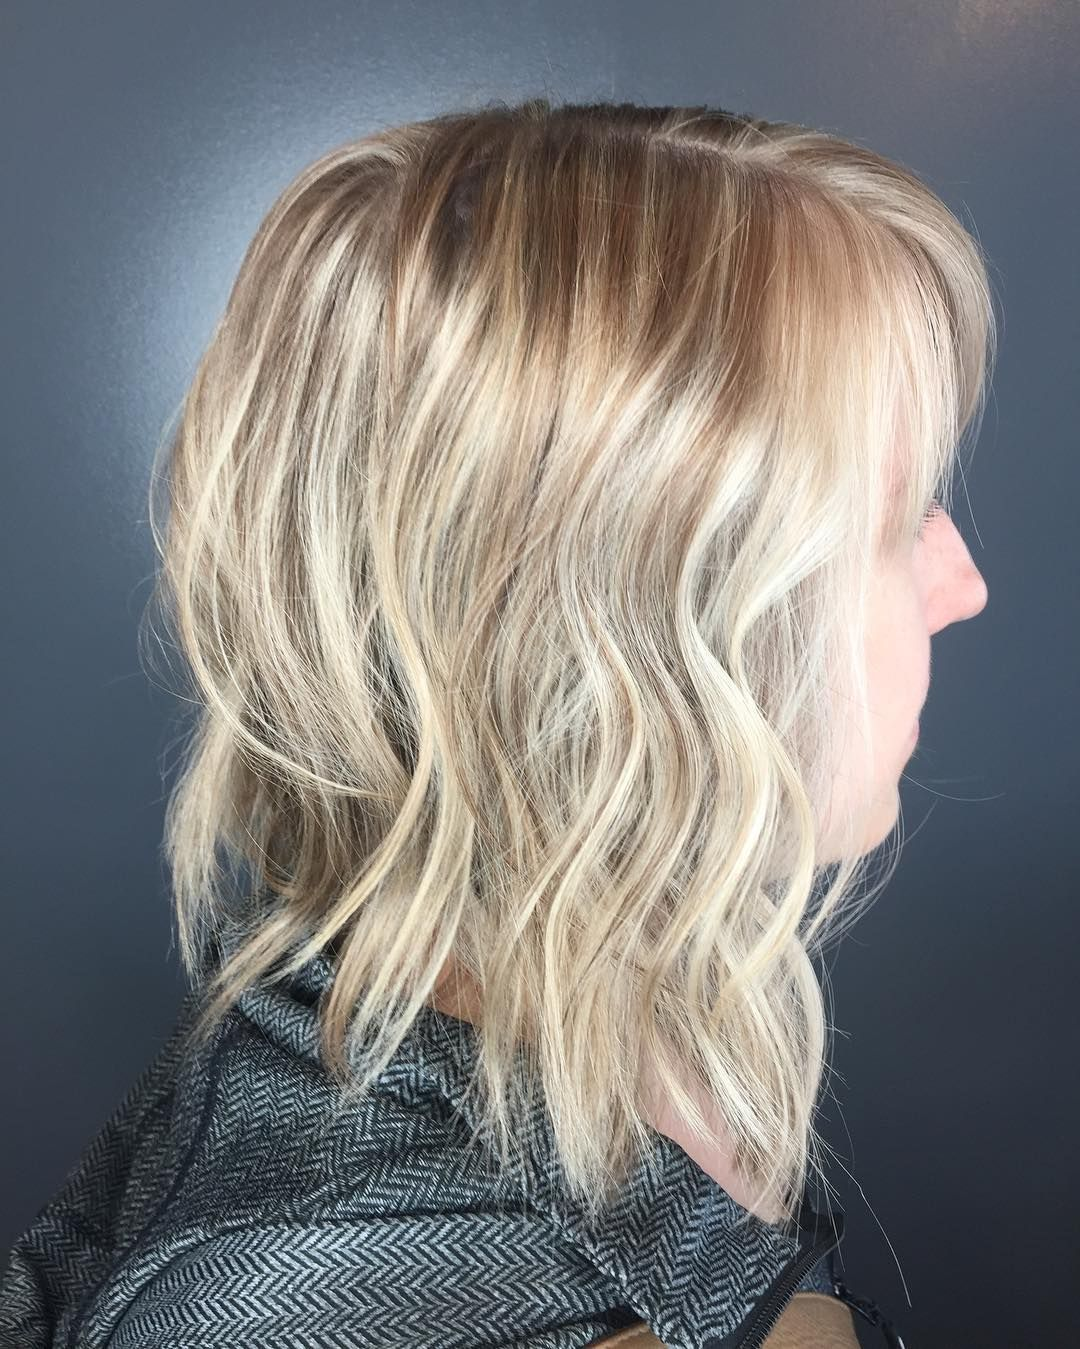 Highlights and lowlights by Brittney redkensalon